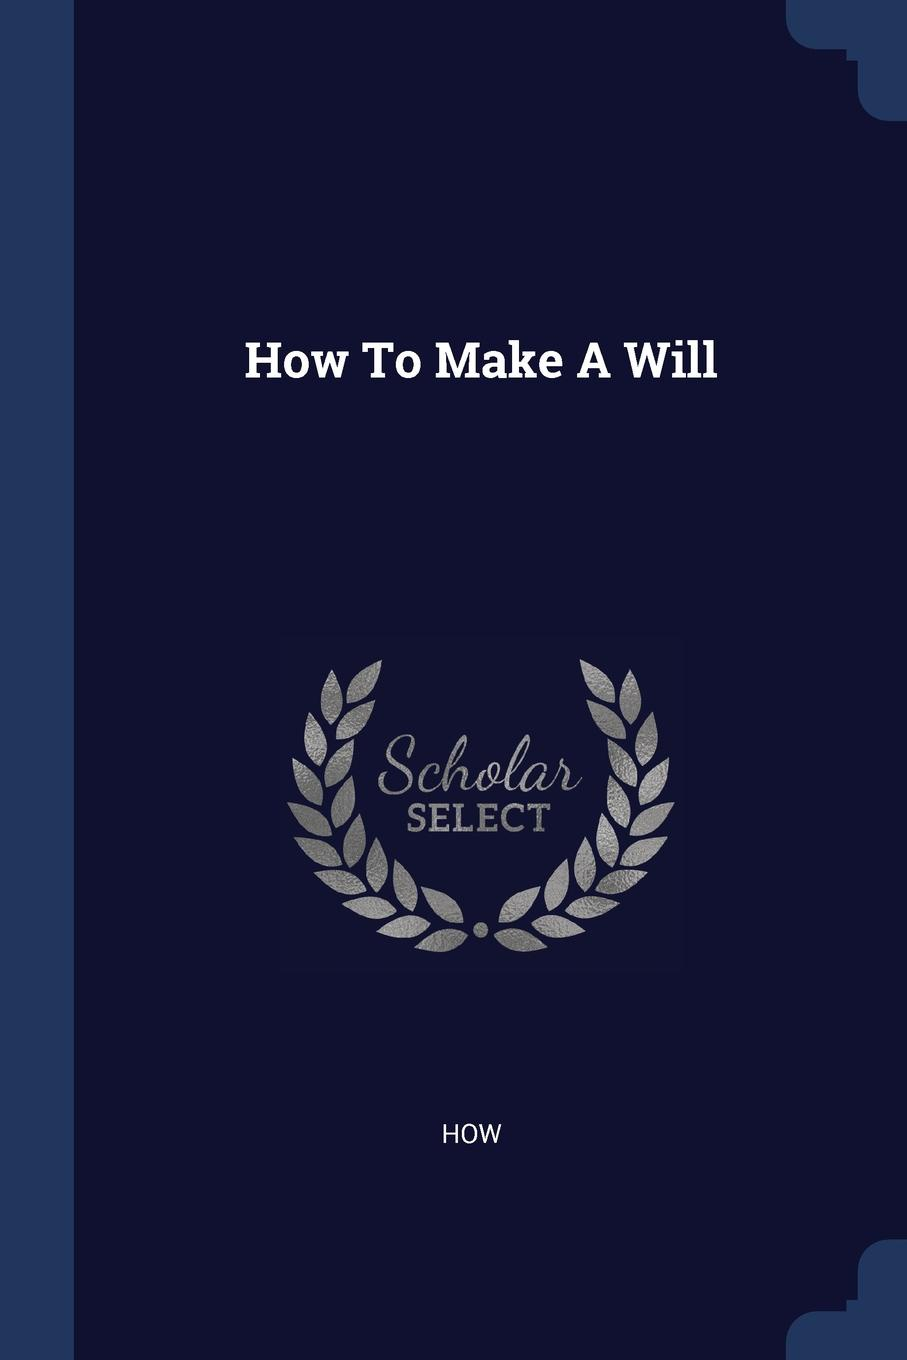 How To Make A Will